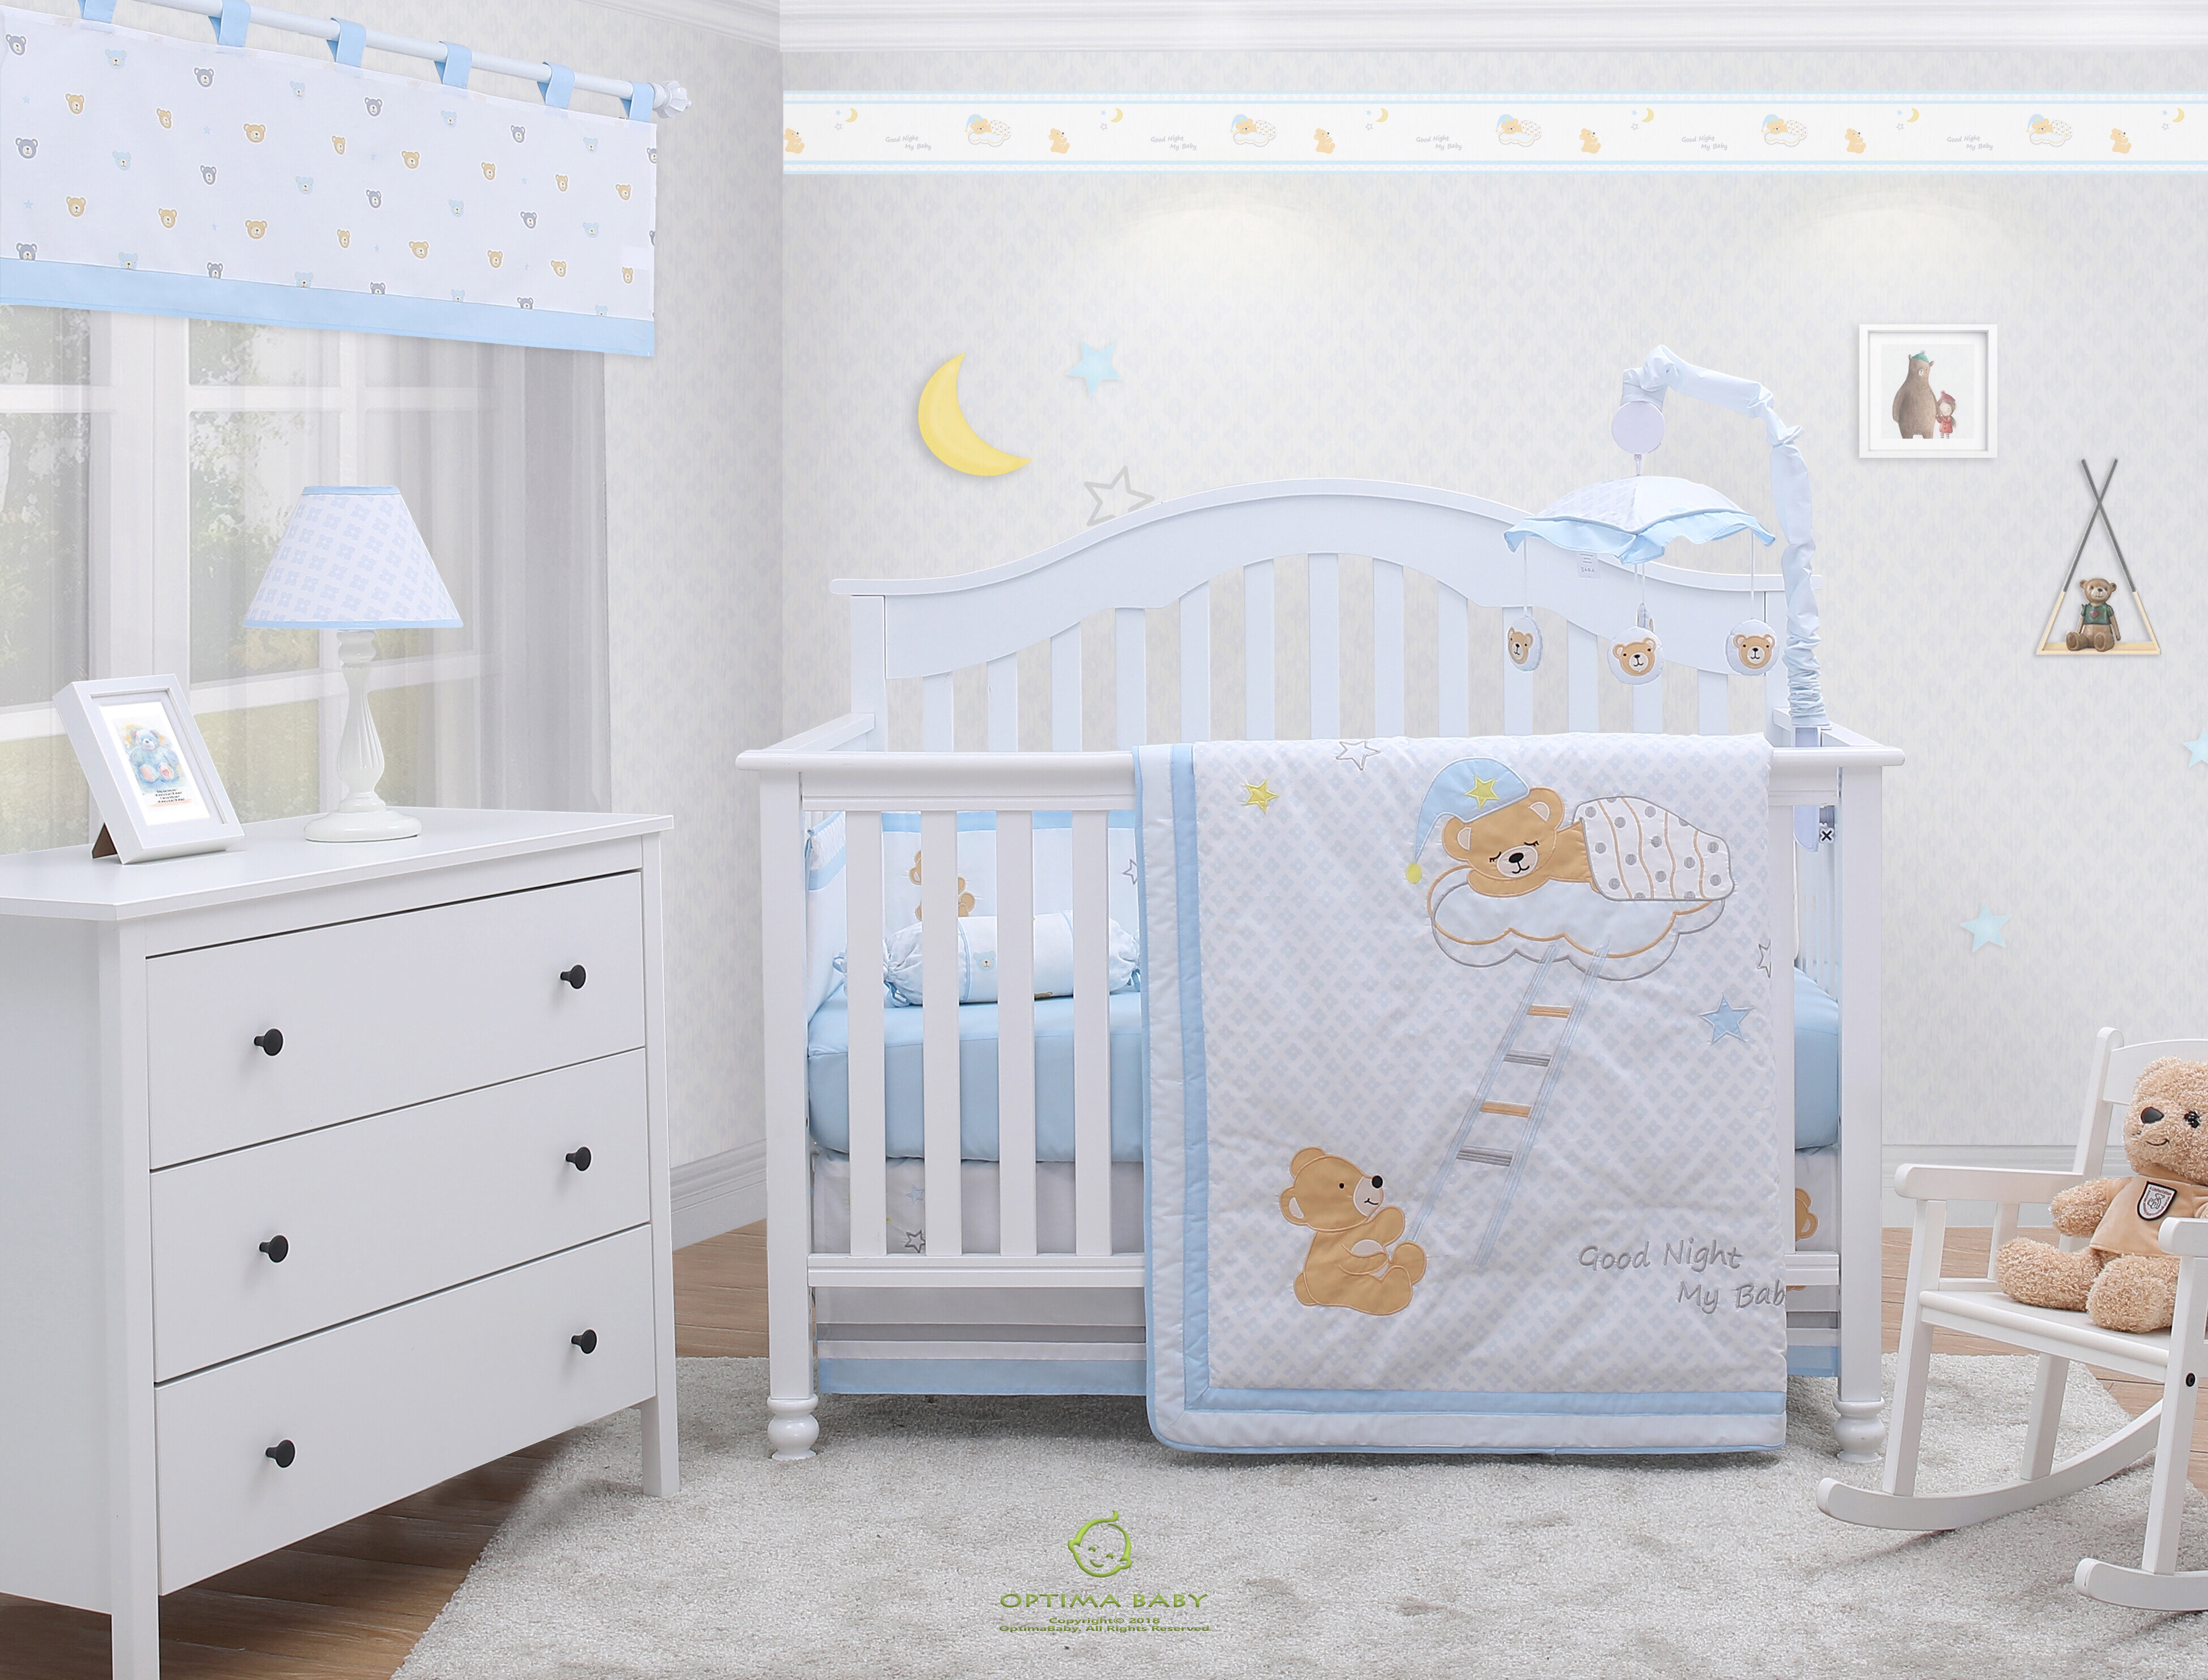 3 designs available 4 pcs Snuggle Baby Baby Cot Quilt and Bumper Set